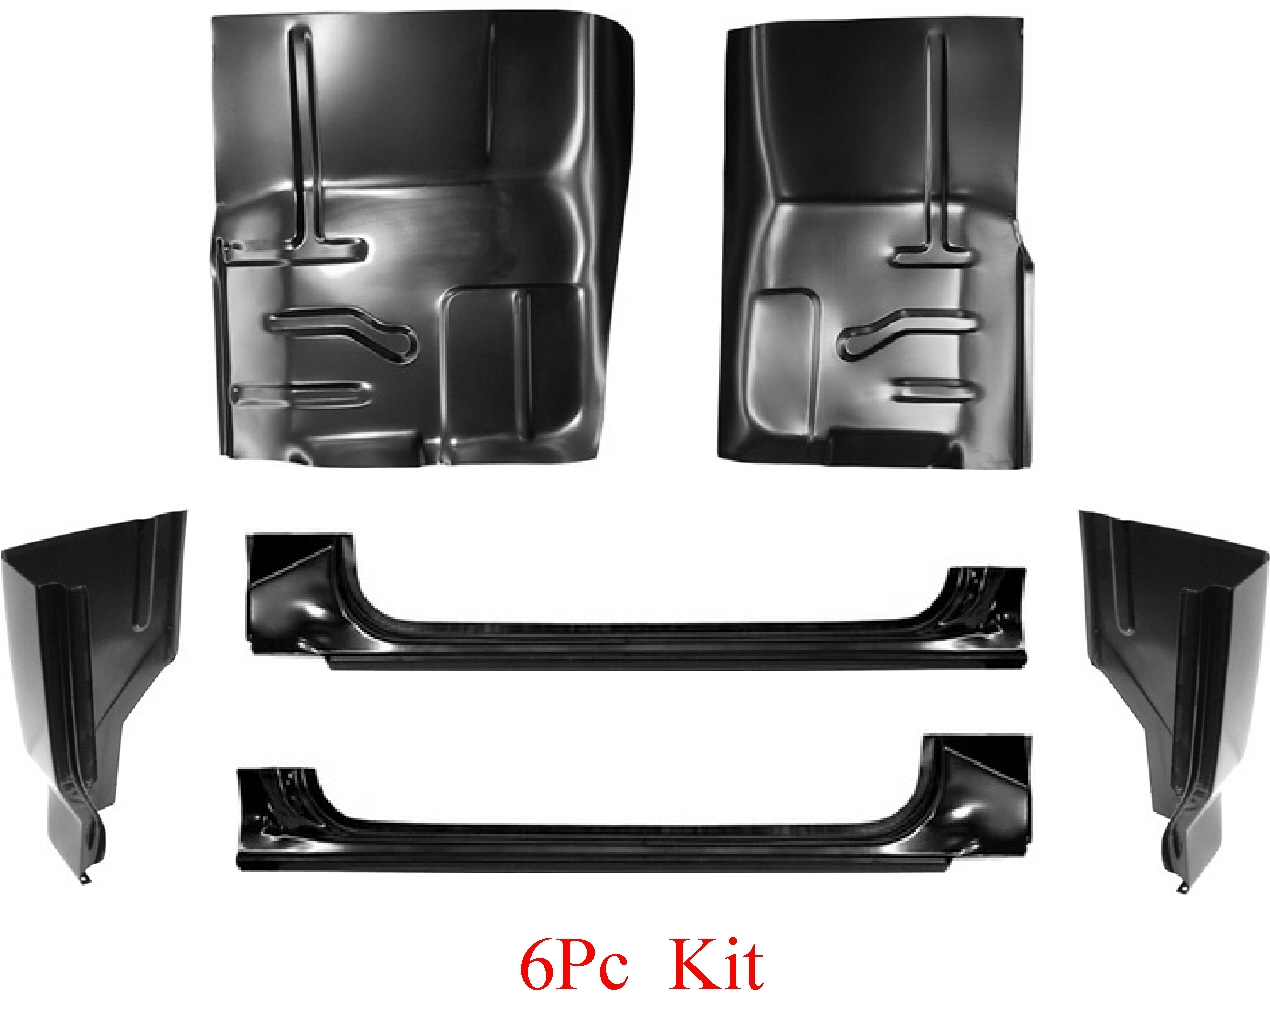 80-96 Ford 6Pc Extended Rocker, Cab Corner & Floor Kit